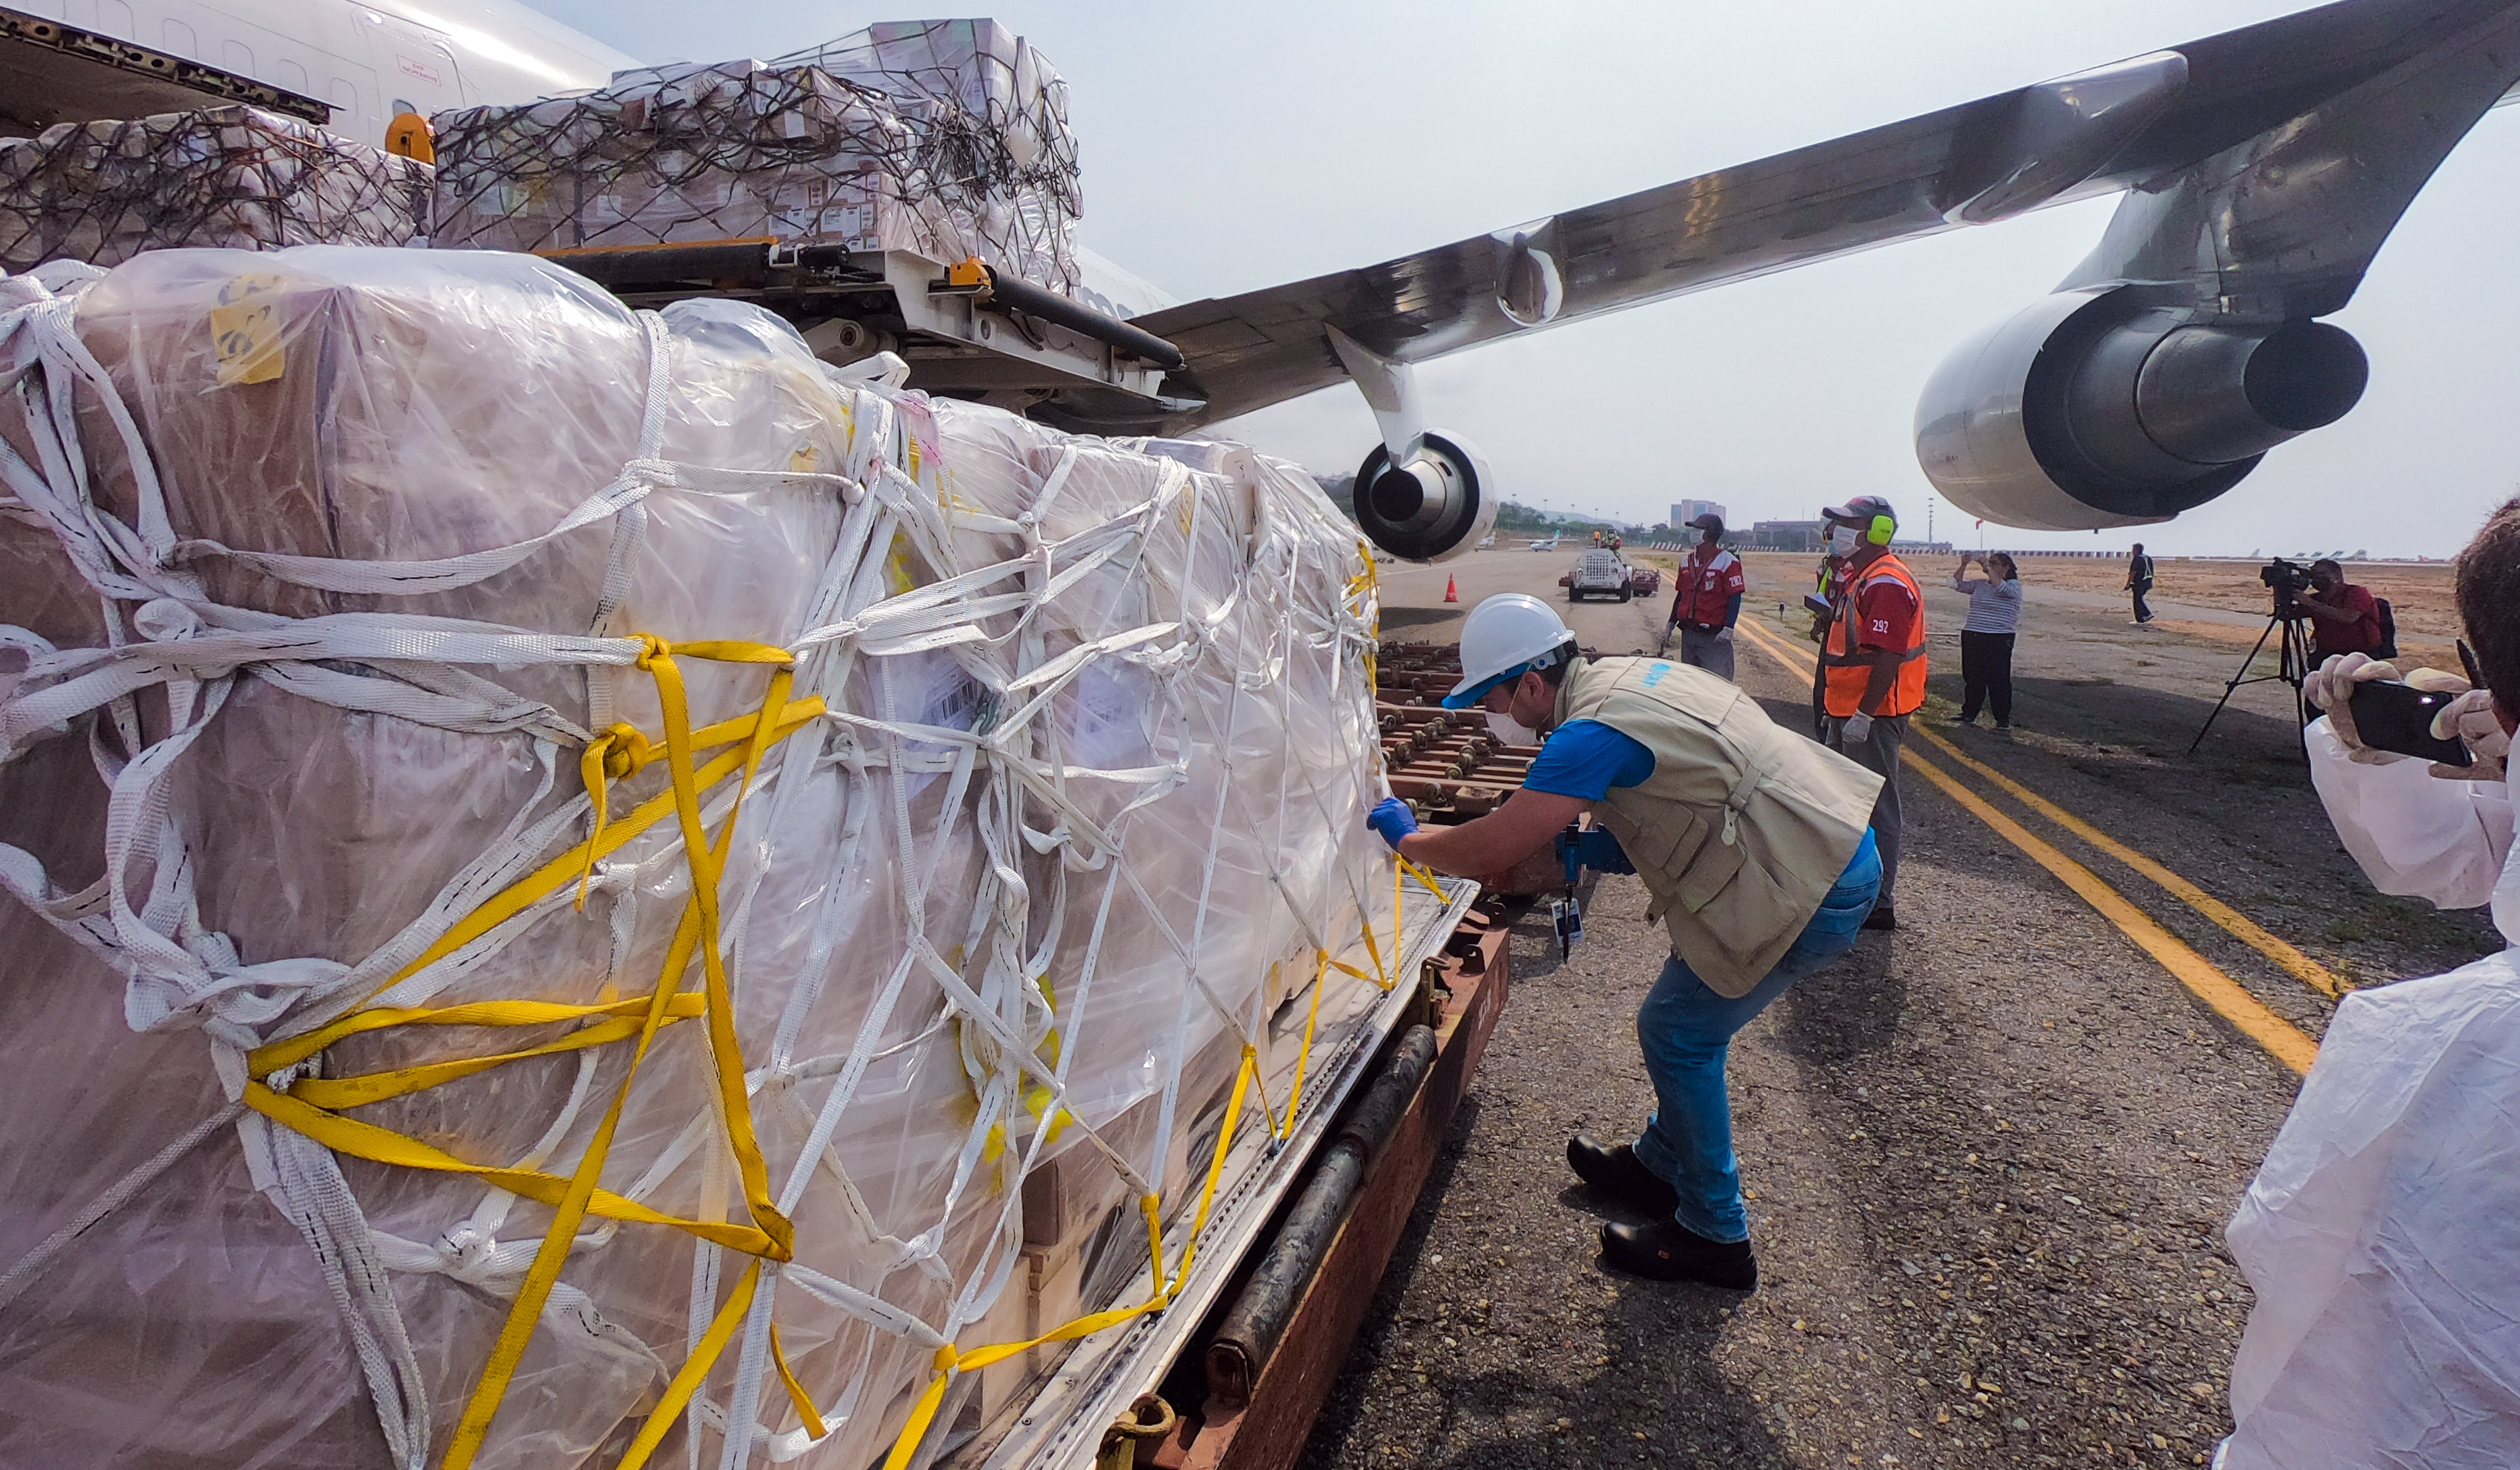 A plane, managed by UNICEF, arrived in the country with 90 tons of supplies to support with COVID-19 response.